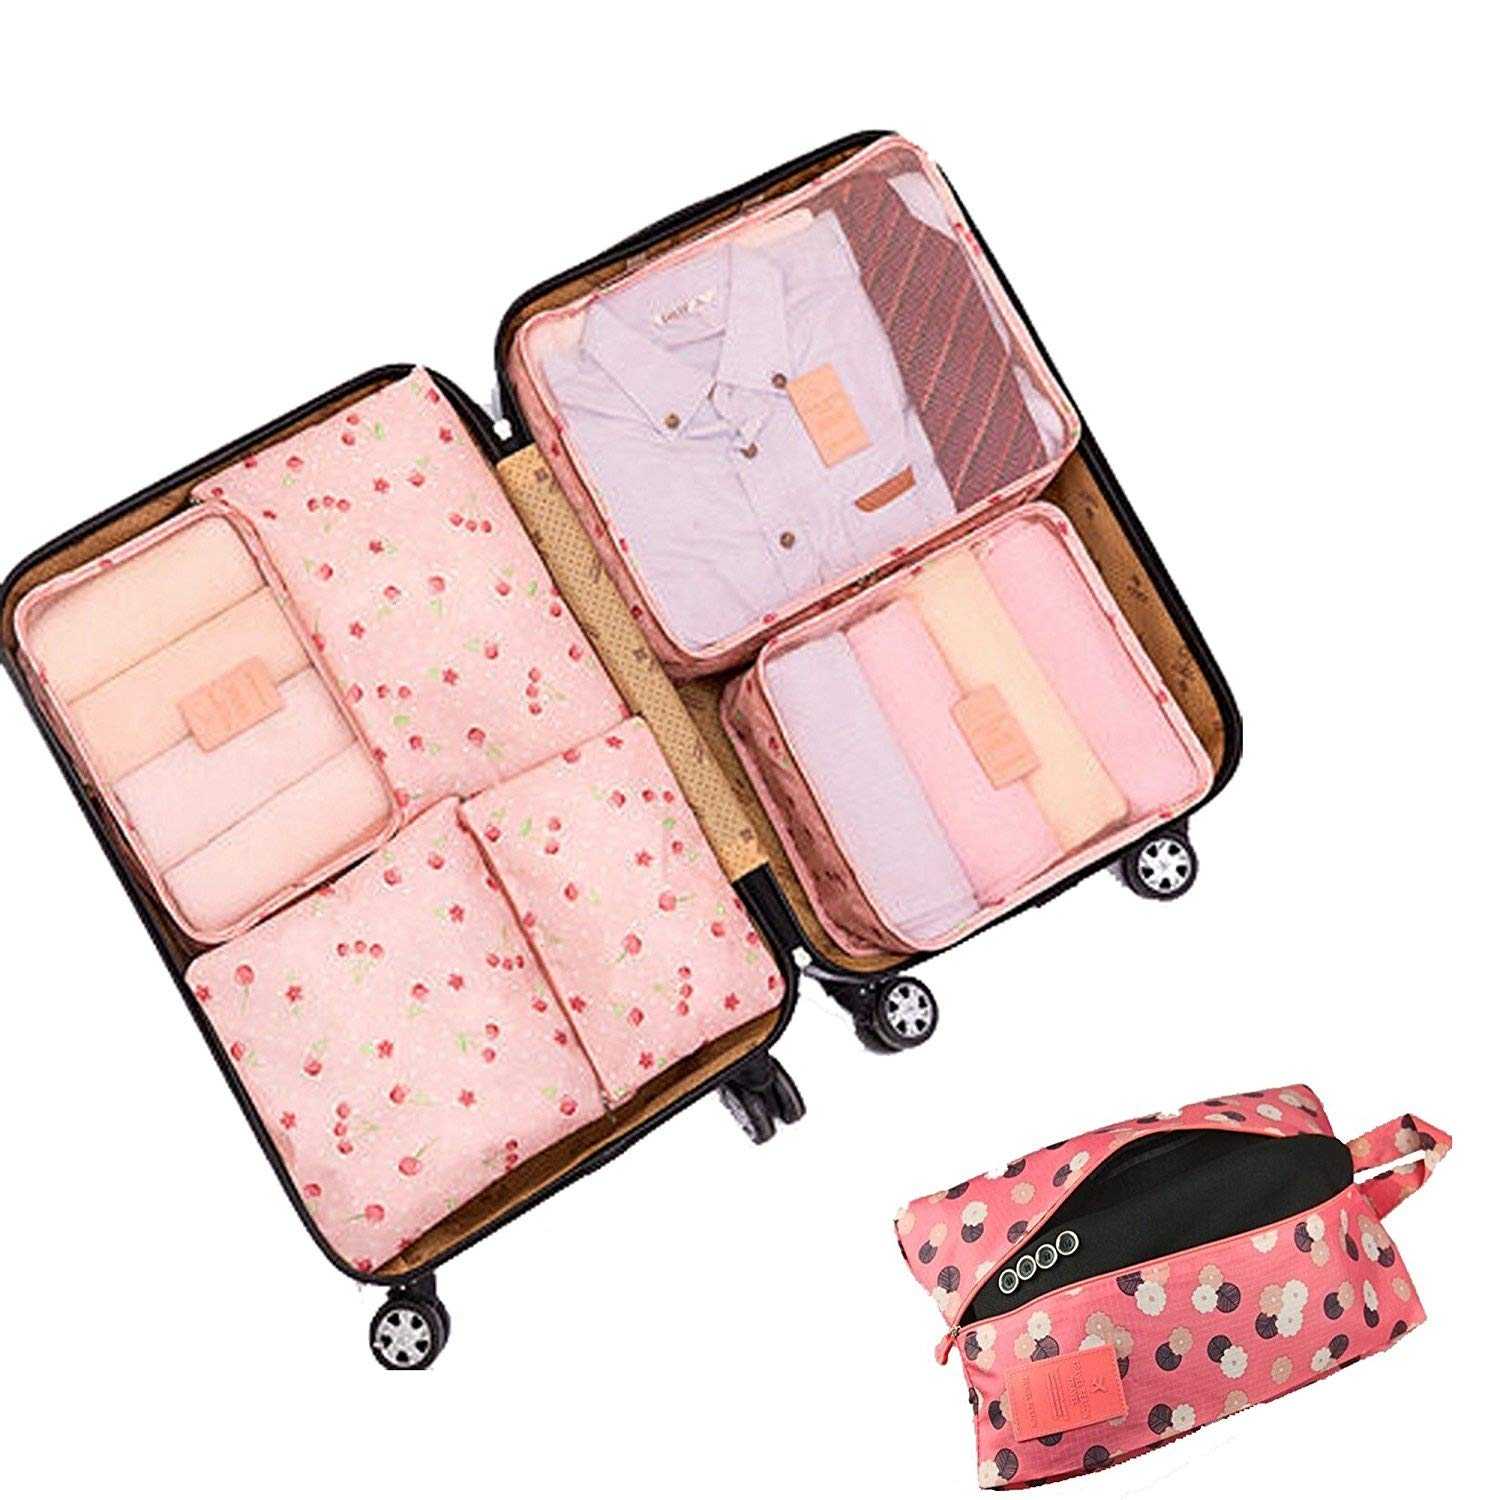 Travel Luggage Organizer Packing Cubes,7 Pcs Travel Essential Bags in Bag, Waterproof Laundry Toiletry Cosmetic Storage Bag Zipper Carry-on Suitcase Organiser Shoes Bag, Set of 7